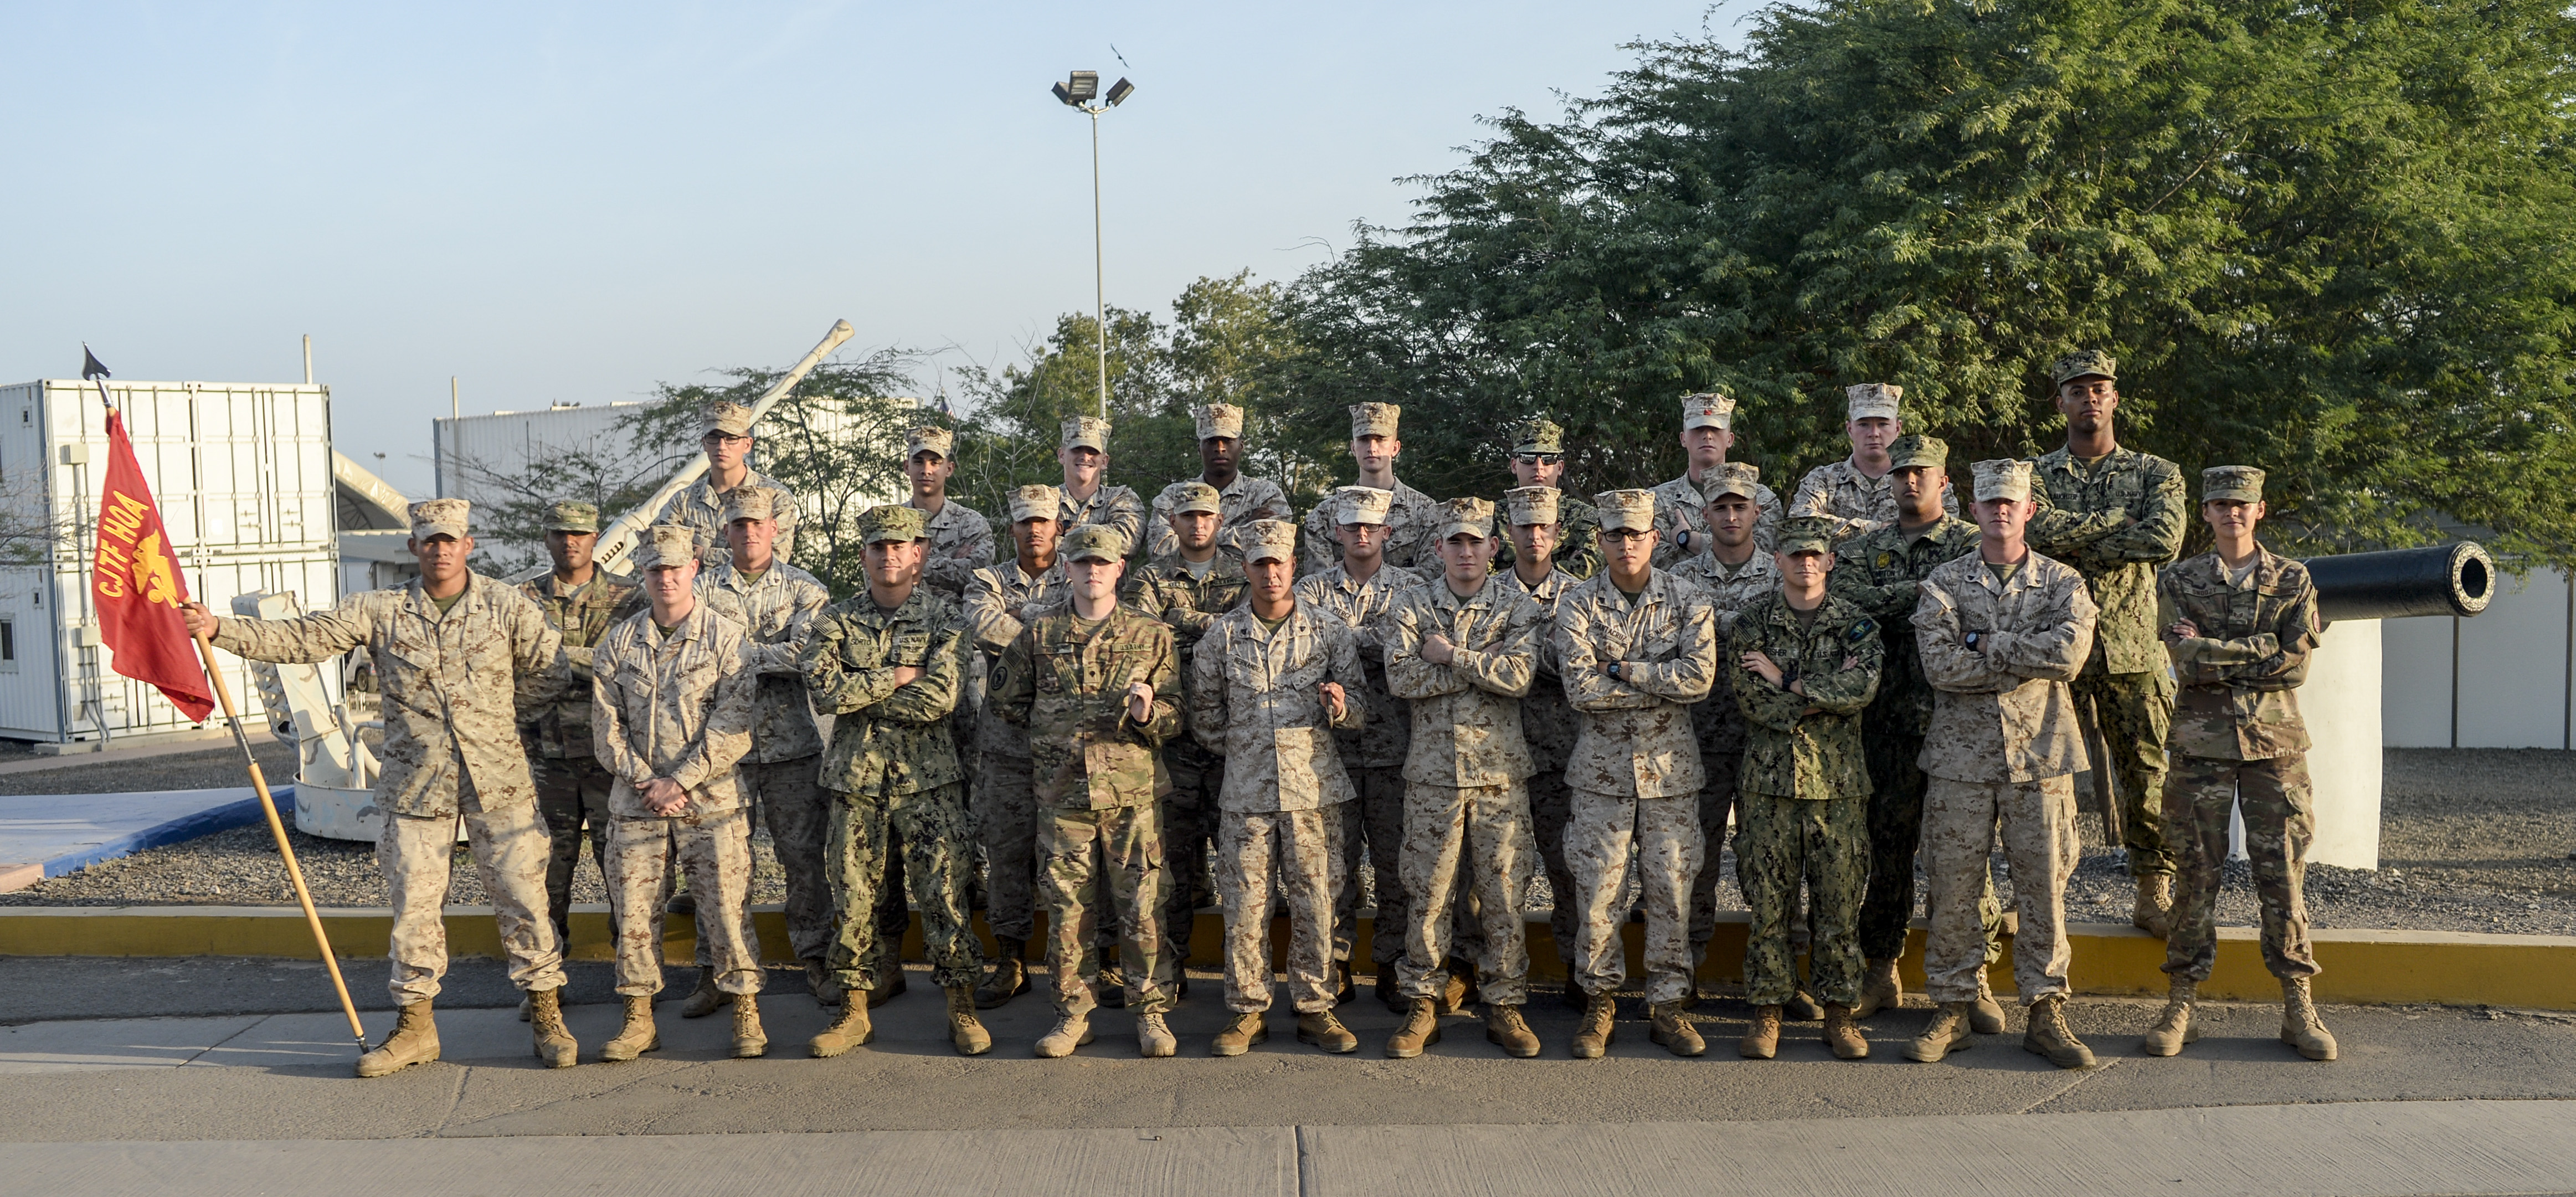 U.S. Marines, Sailors, Soldiers and Airmen pose for a class photo during the Joint Corporals Course at Camp Lemonnier, Djibouti, Jan. 20, 2017. The course, designed by the Marine Corps University, places significant emphasis on developing leadership to prepare junior enlisted service members for their transition from subordinates to small unit leaders.   (U.S. Air National Guard photo by Staff Sgt. Christian Jadot)